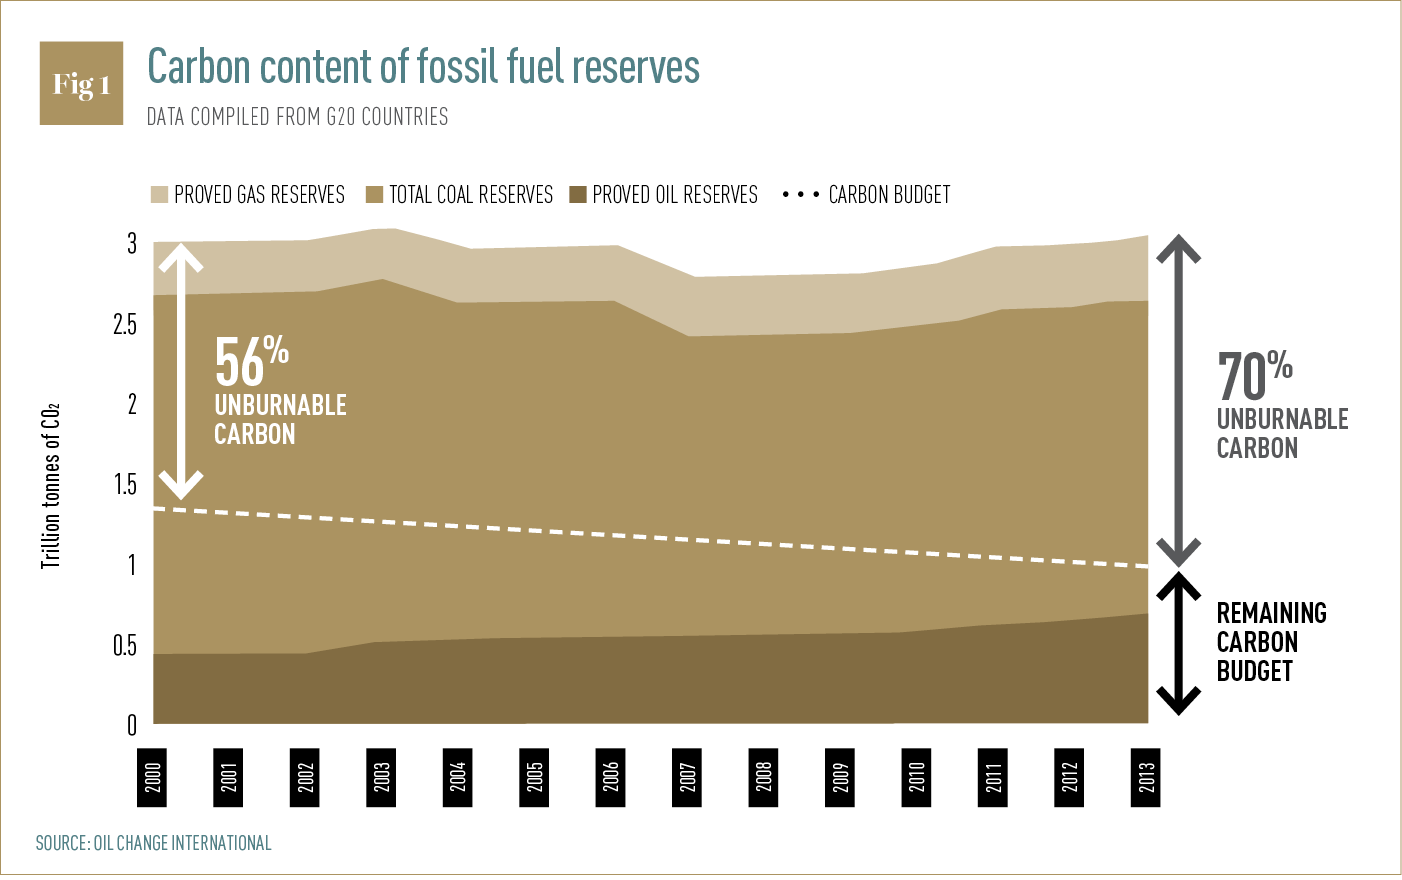 Carbon content of fossil fuel reserves